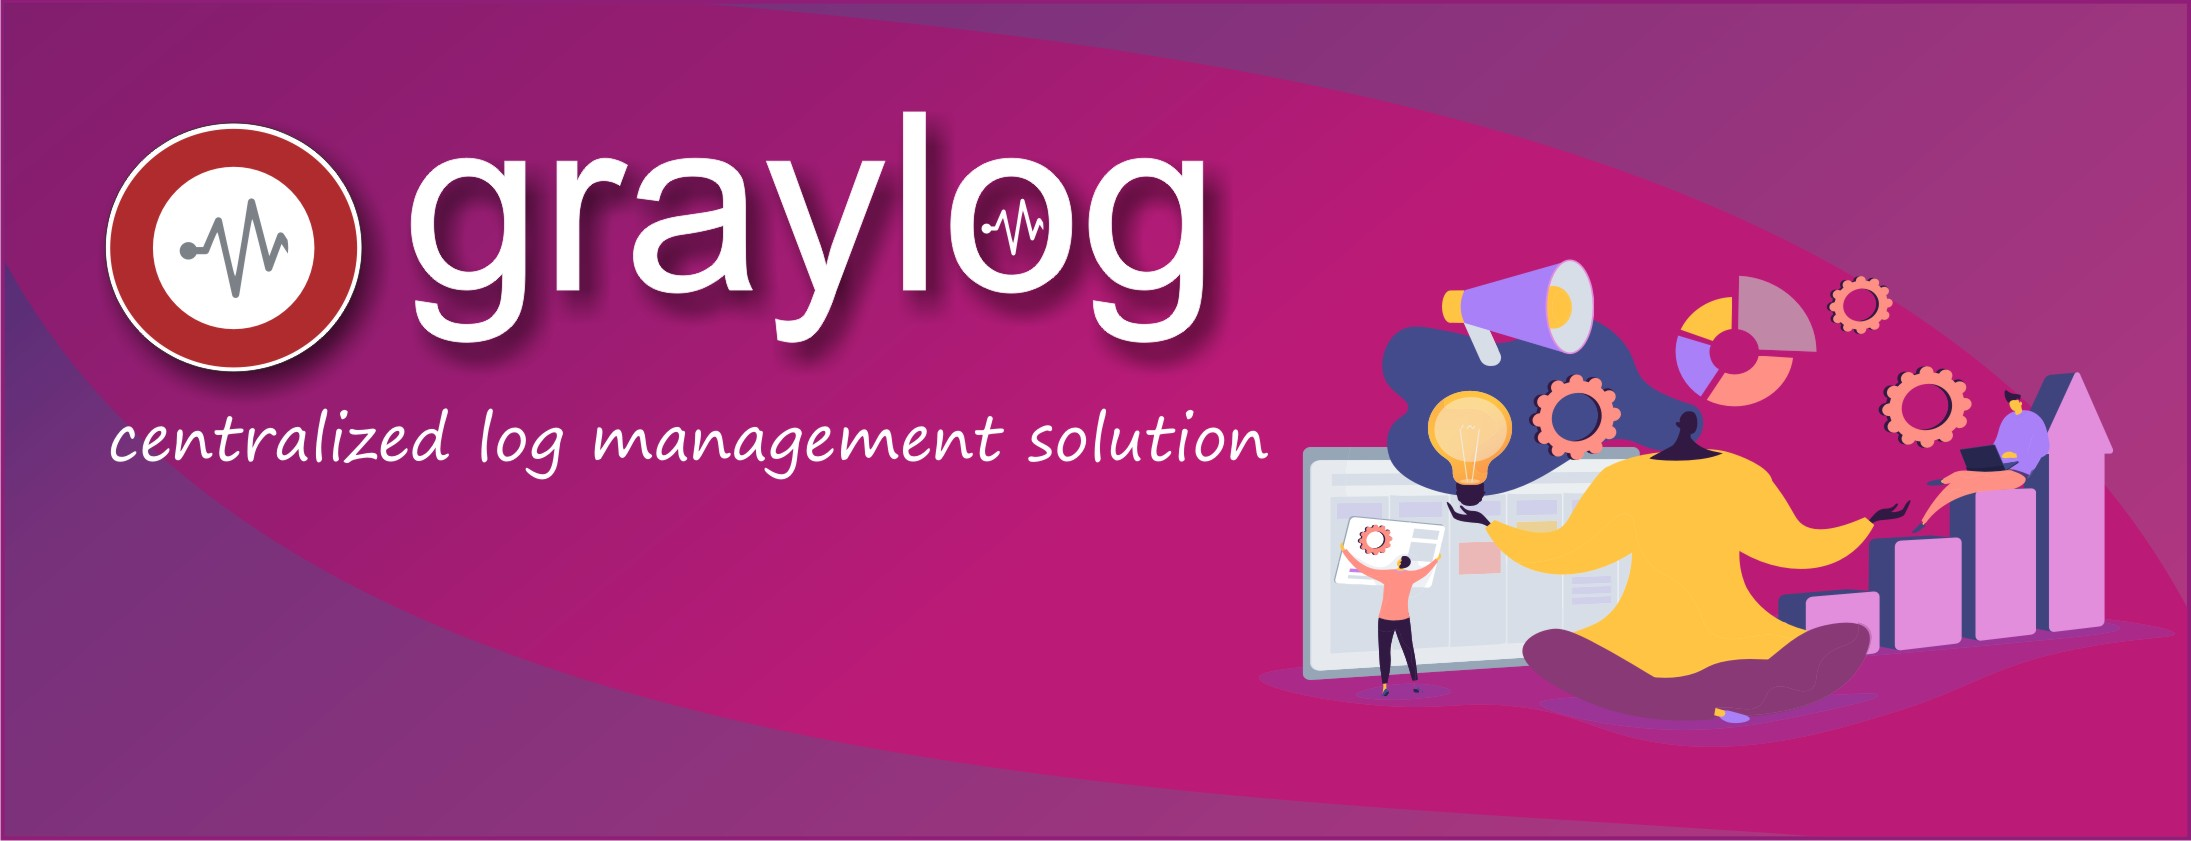 graylog-management